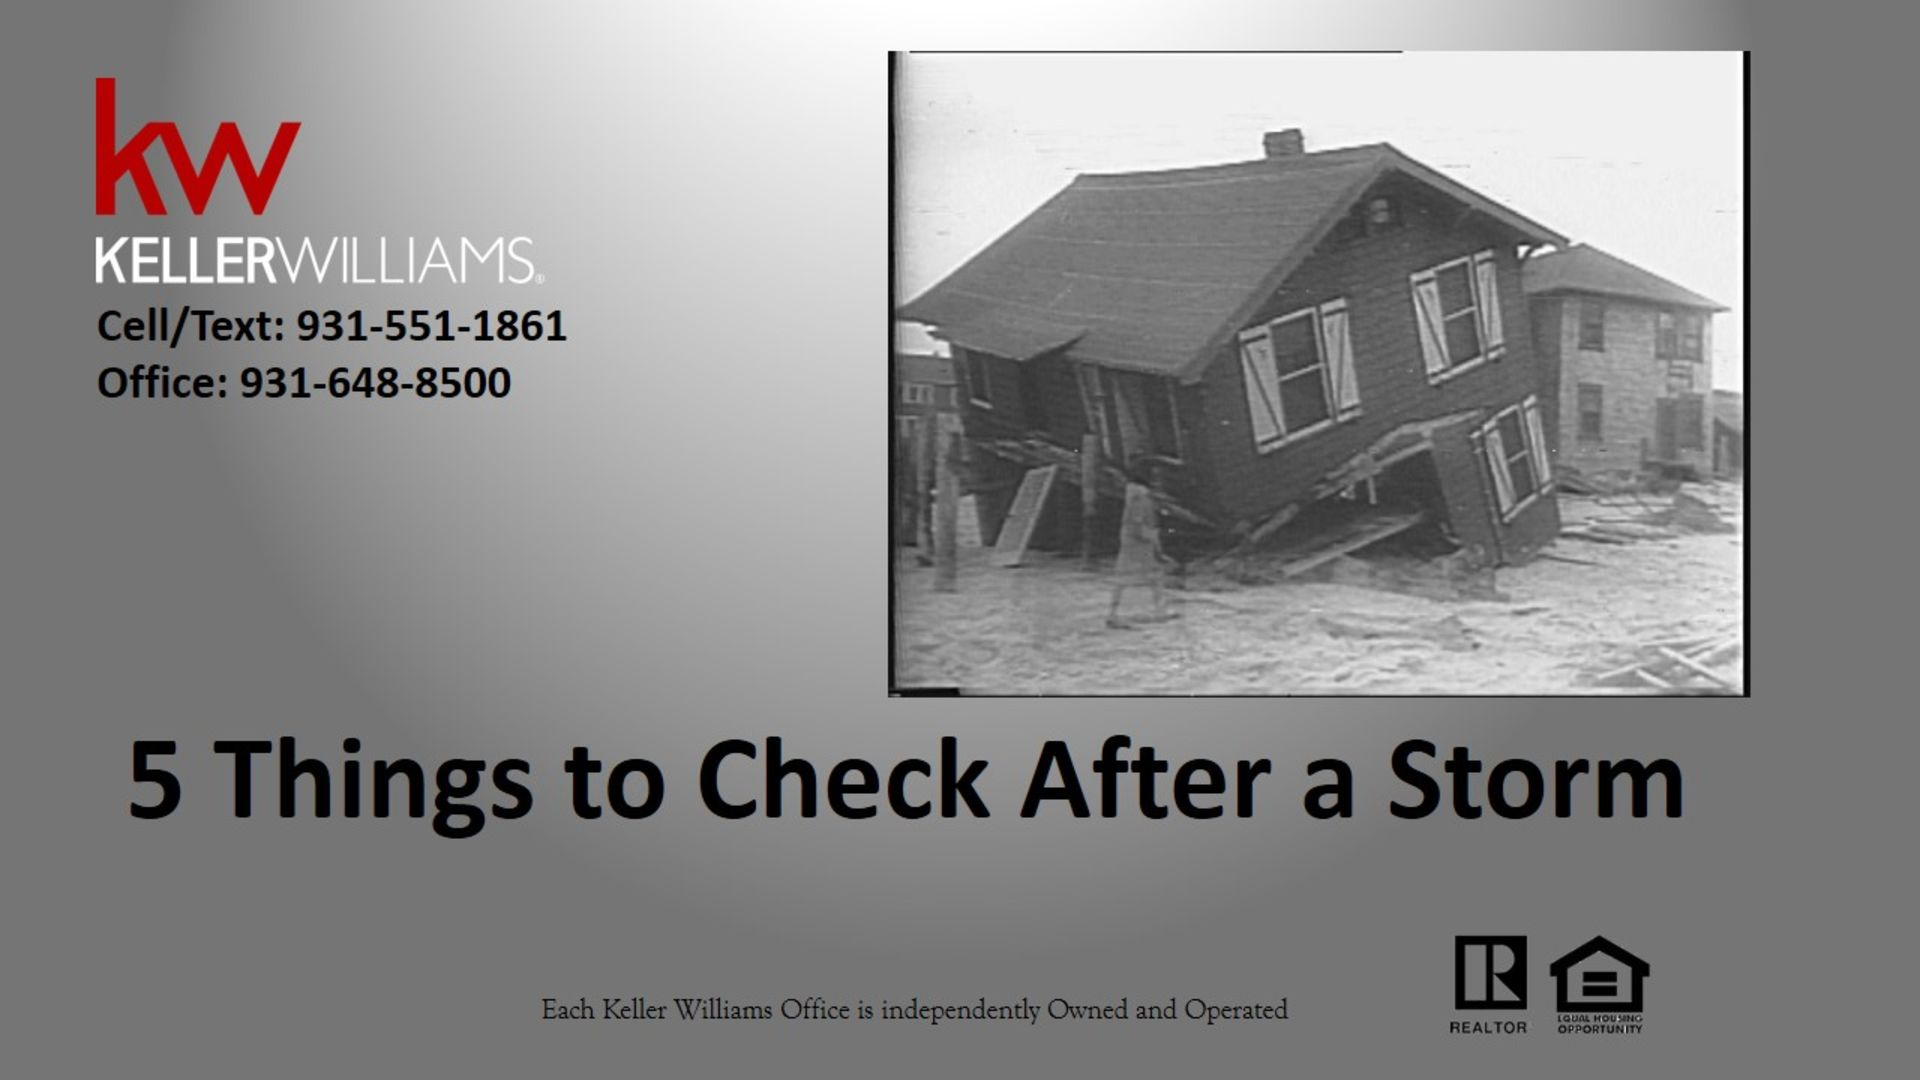 5 Things to Check After a Storm